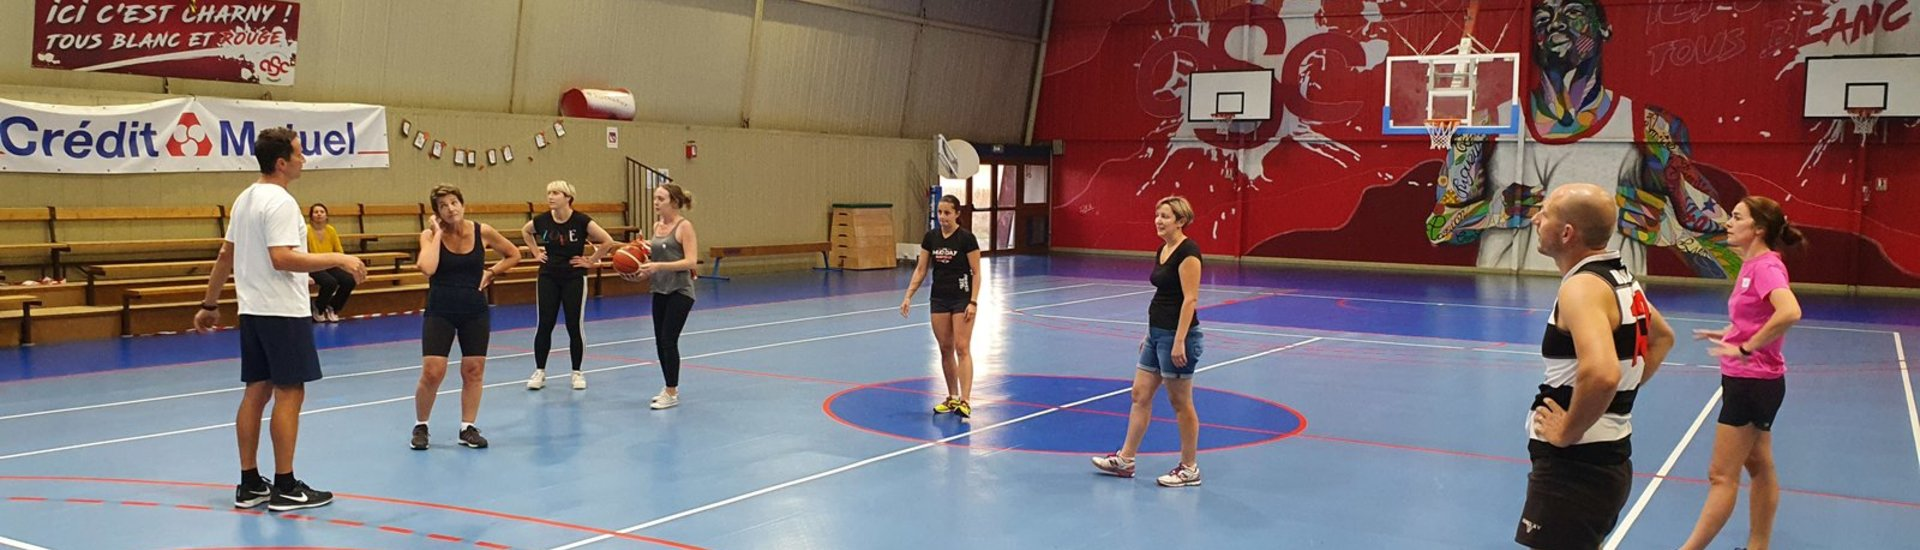 Formation Enseignants Partenariats Basket C2-C3